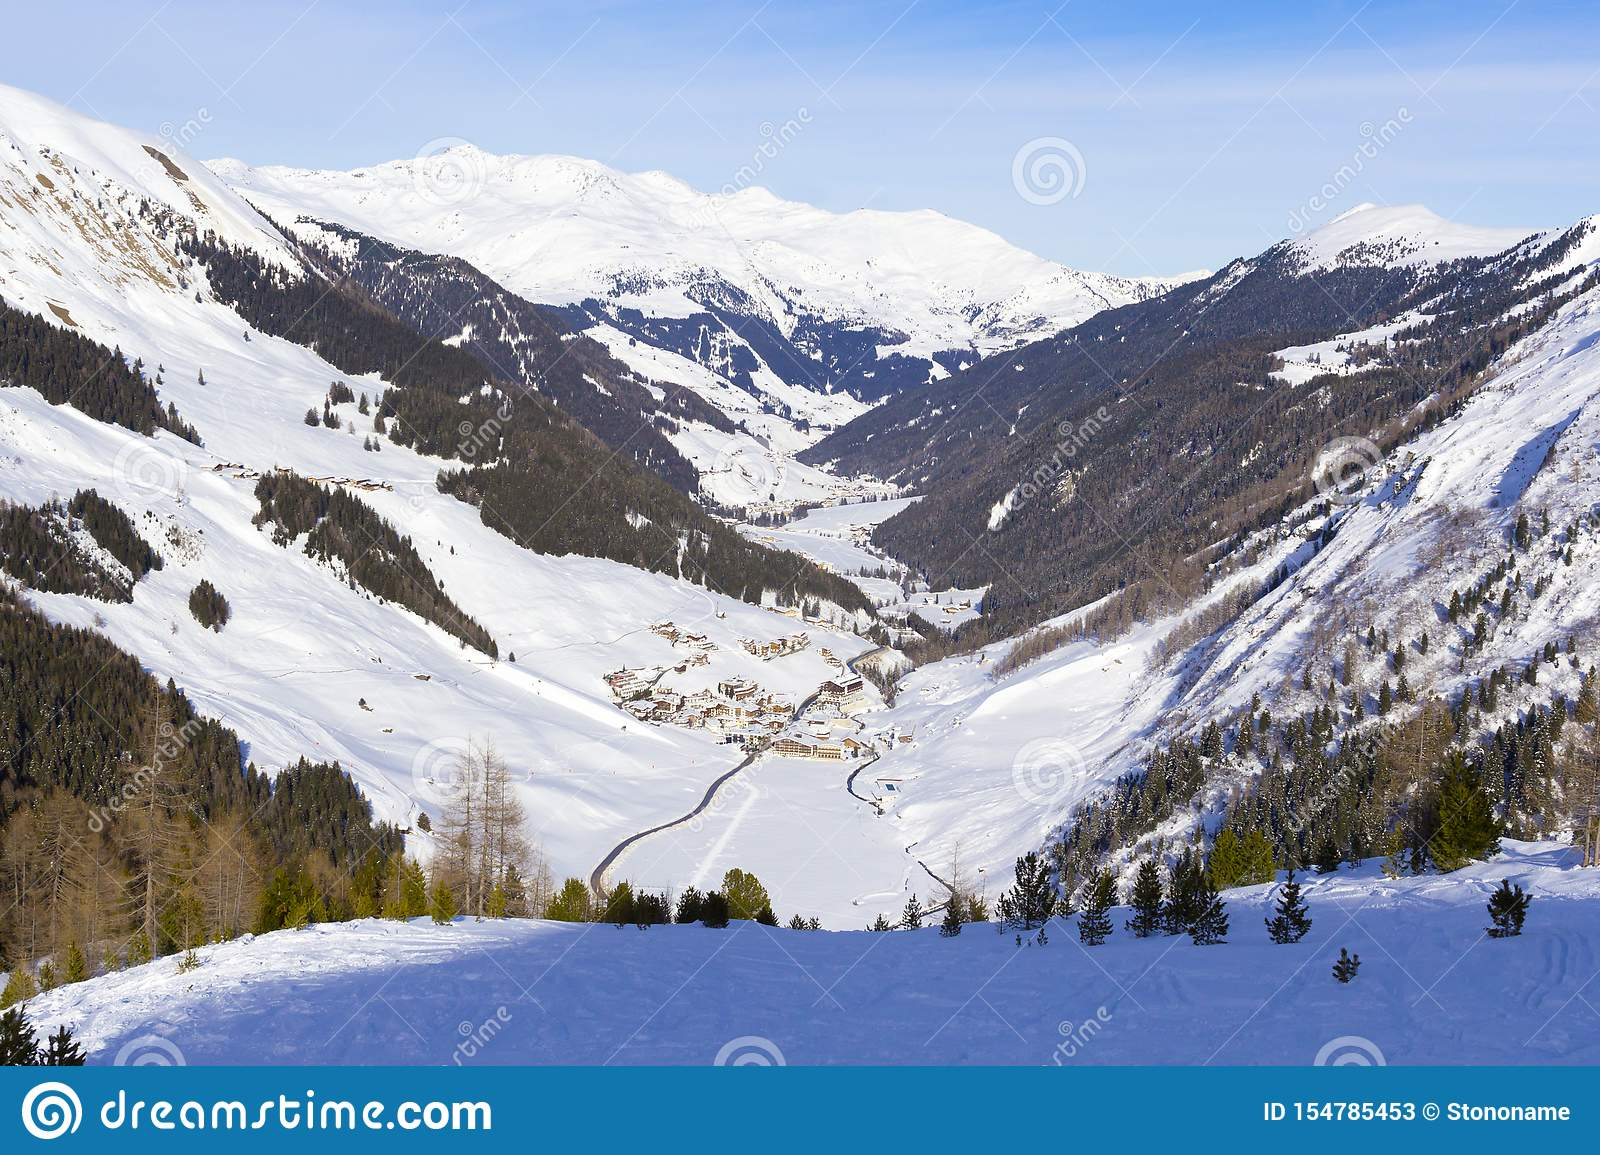 Valley with village in Austrian Alps winter. Hintertux mountain landscape at Tirol, Top of Europe